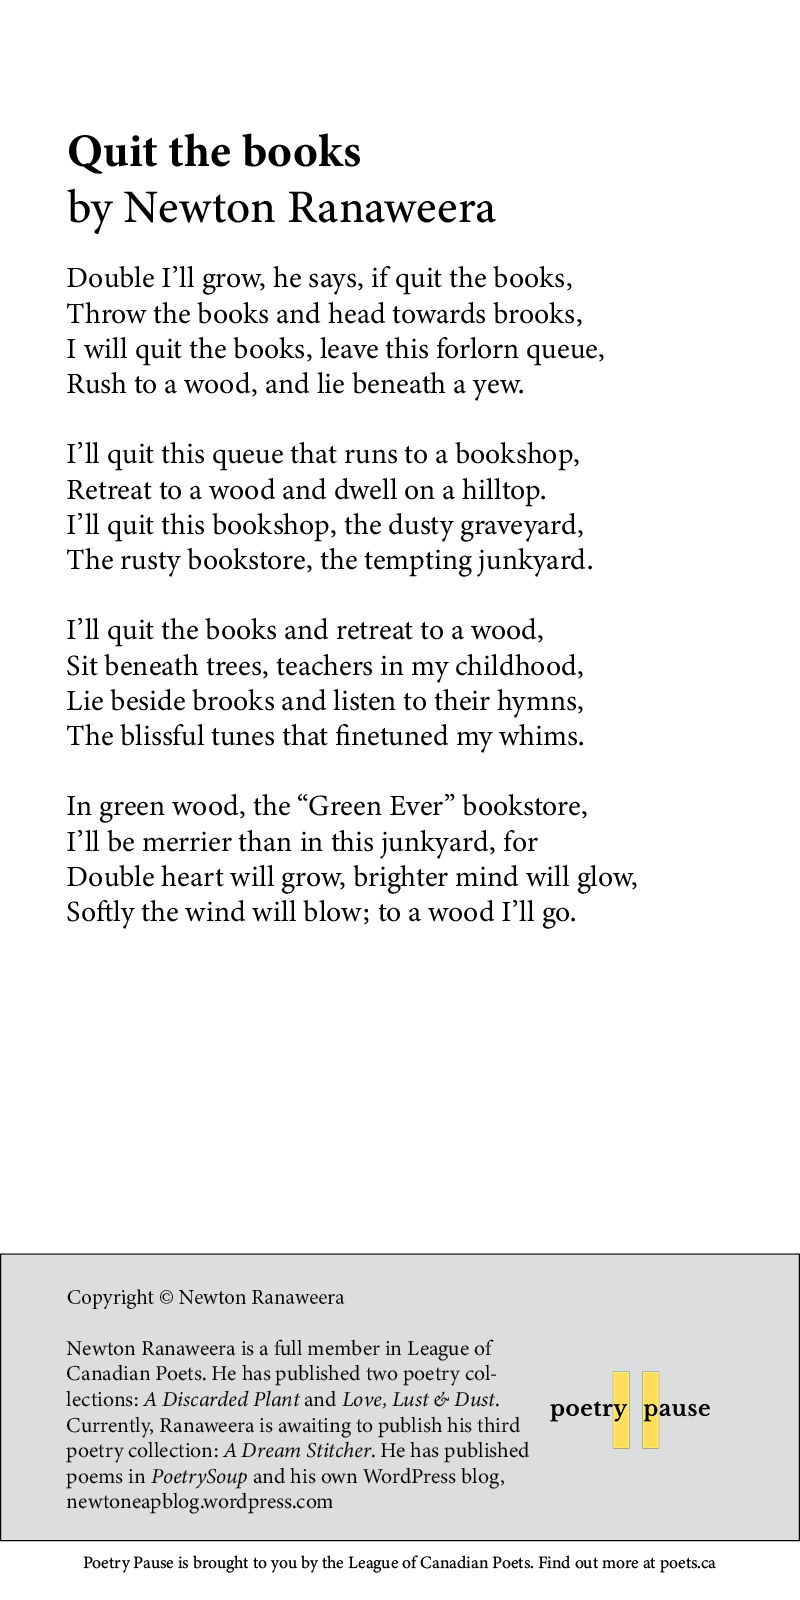 """Poem title: Quit the books Poet name: Newton Ranaweera Poem Begins: Double I'll grow, he says, if quit the books, Throw the books and head towards brooks, I will quit the books, leave this forlorn queue, Rush to a wood, and lie beneath a yew. I'll quit this queue that runs to a bookshop, Retreat to a wood and dwell on a hilltop. I'll quit this bookshop, the dusty graveyard, The rusty bookstore, the tempting junkyard. I'll quit the books and retreat to a wood, Sit beneath trees, teachers in my childhood, Lie beside brooks and listen to their hymns, The blissful tunes that finetuned my whims. In green wood, the """"Green Ever"""" bookstore, I'll be merrier than in this junkyard, for Double heart will grow, brighter mind will glow, Softly the wind will blow; to a wood I'll go. End of poem. Credits: Copyright © Newton Ranaweera Newton Ranaweera is a full member in League of Canadian Poets. He has published two poetry collections: A Discarded Plant and Love, Lust & Dust. Currently, Ranaweera is awaiting to publish his third poetry collection: A Dream Stitcher. He has published poems in PoetrySoup and his own WordPress blog, newtoneapblog.wordpress.com"""